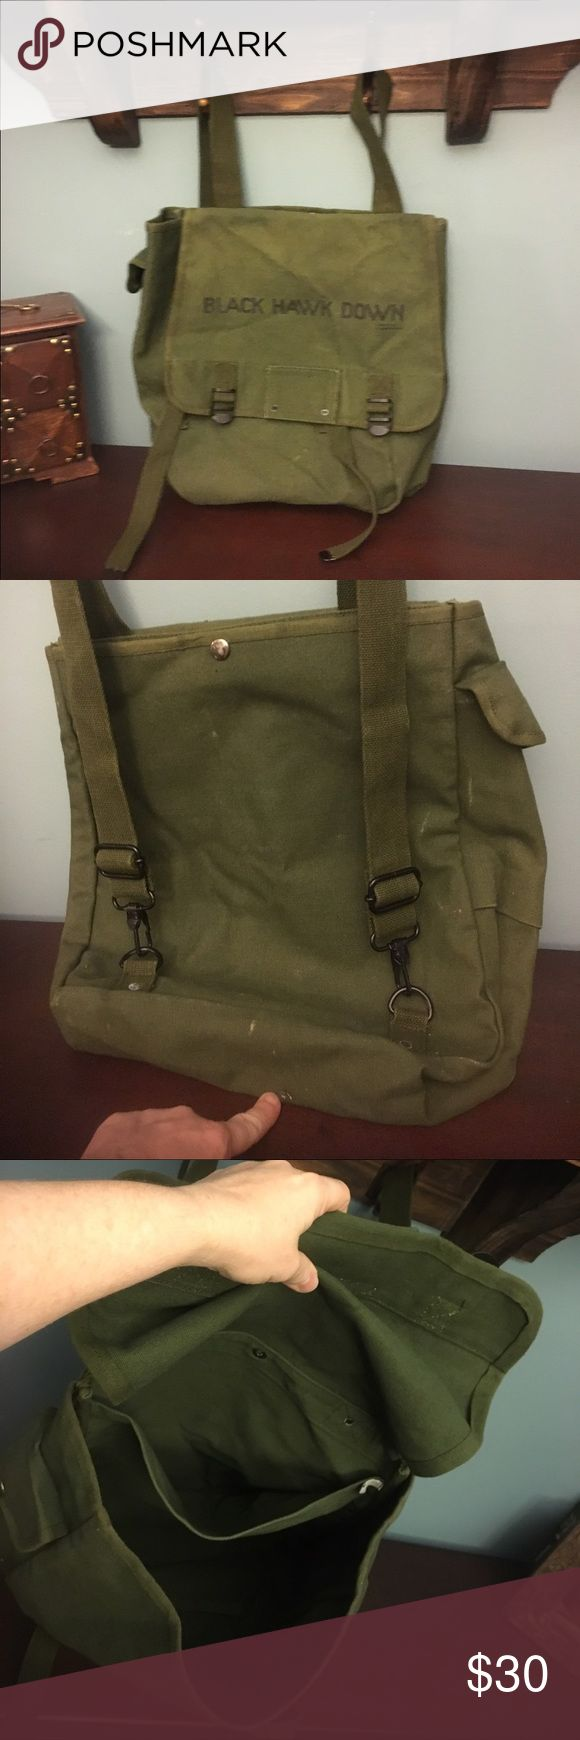 Black Hawk Down Backpack Army green color. Preowned has a few whitish color marks on it and a small pinpoint hole pointed out. No musty smell. Very cool look. Metal and plastic hard ware.💥💥sale 💥💥 Black Hawk Down Bags Backpacks